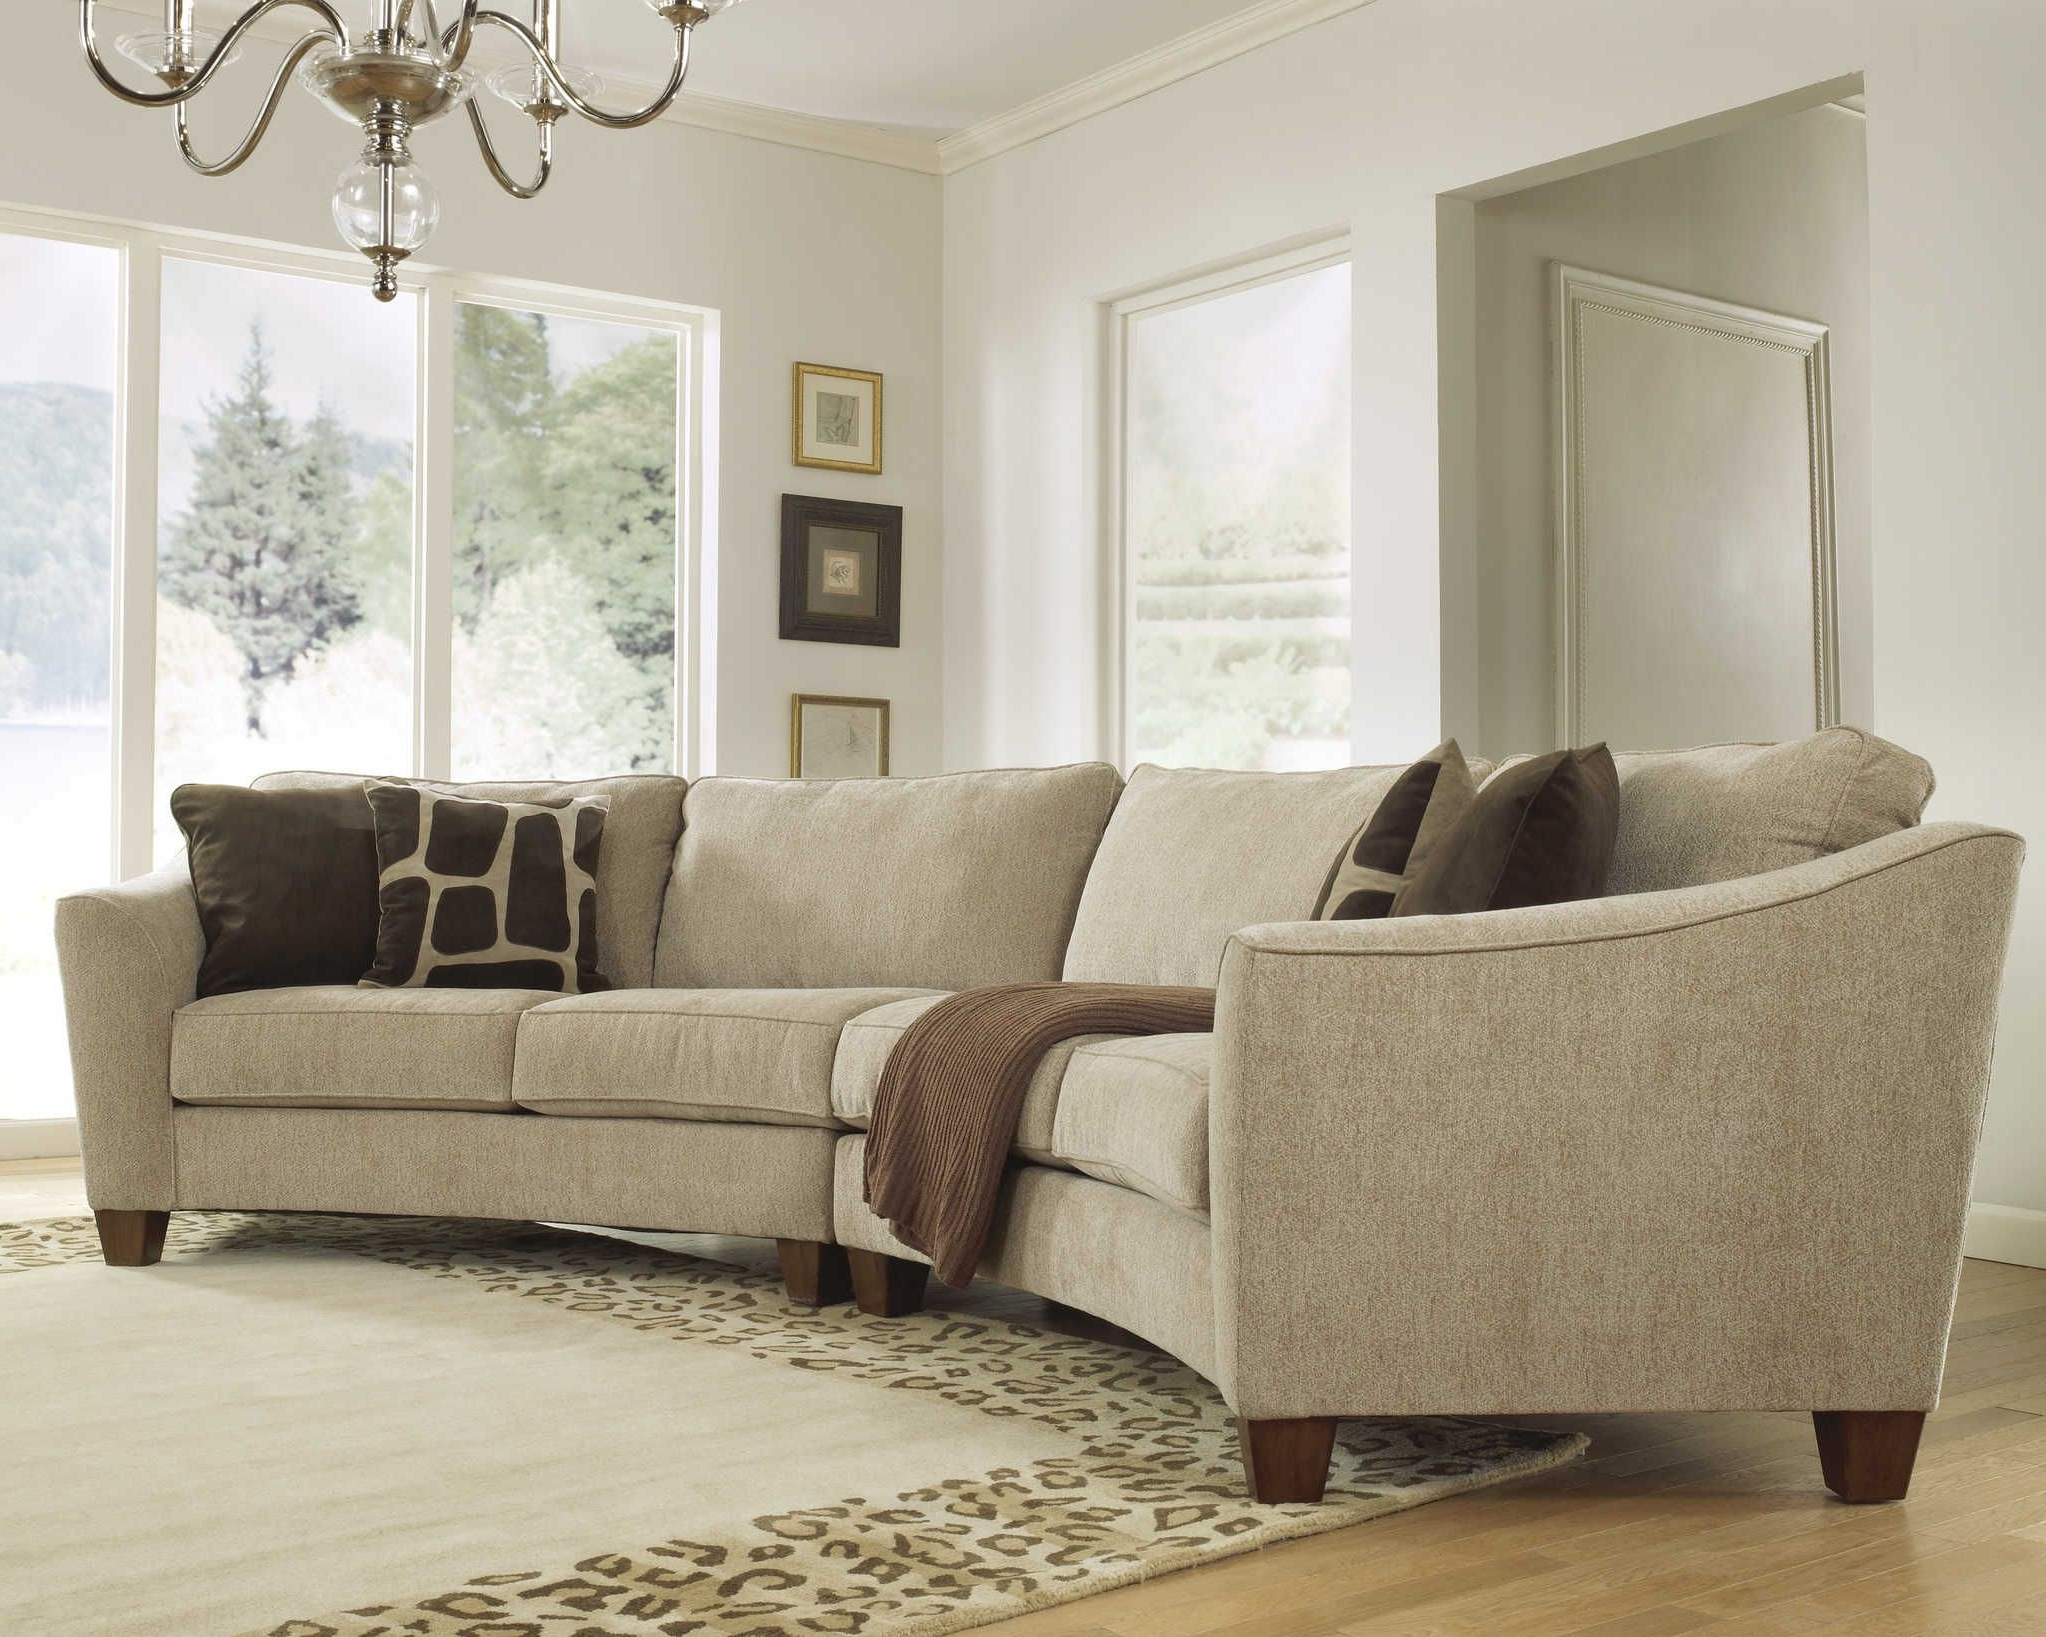 Rounded Corner Sectional Sofas For Latest Curved Sectional Sofa Set – Rich Comfortable Upholstered Fabric (View 14 of 15)